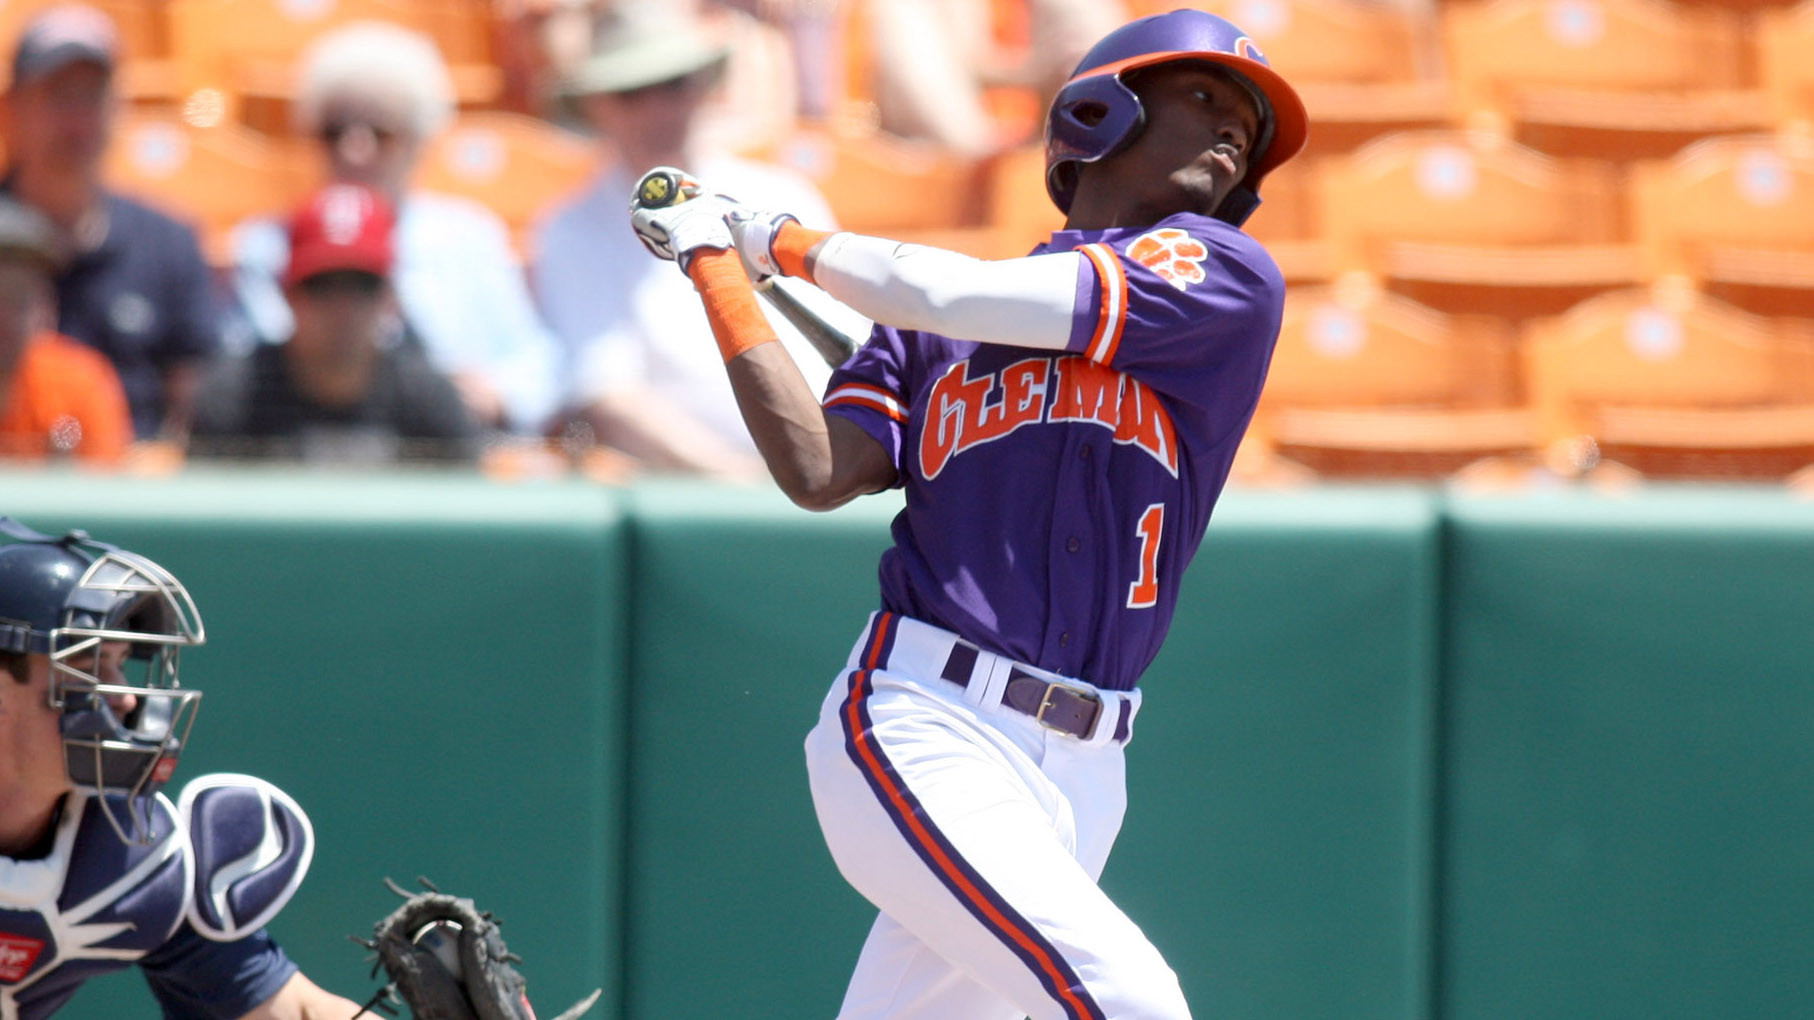 Tigers to Play Host to USC Upstate Tuesday in Final Regular Season Home Game